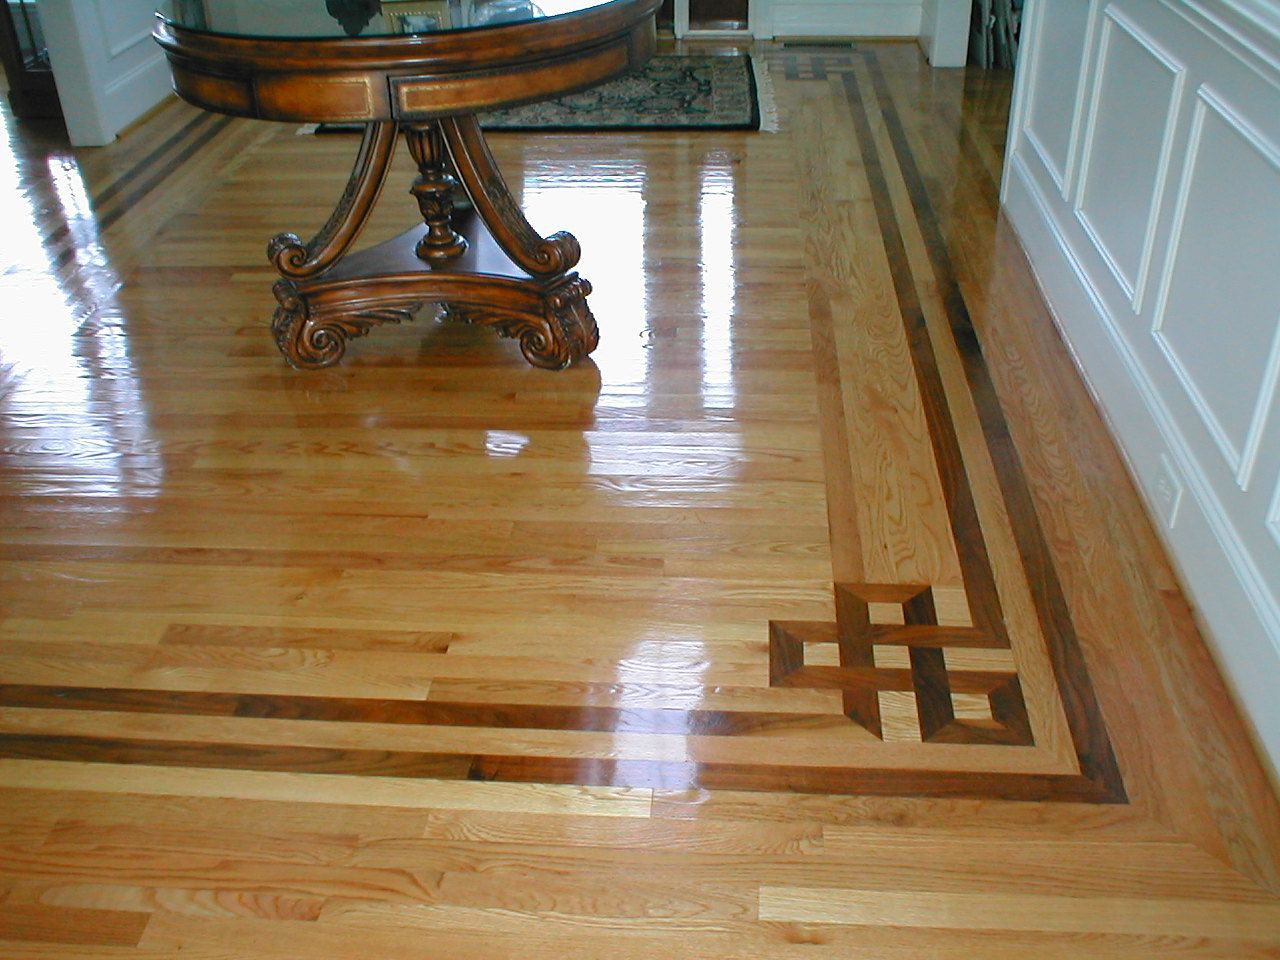 hardwood flooring frederick md of i love the illusion of depth created by this border you can tell intended for i love the illusion of depth created by this border you can tell the installers took care to contrast shades of the border material to keep it from all